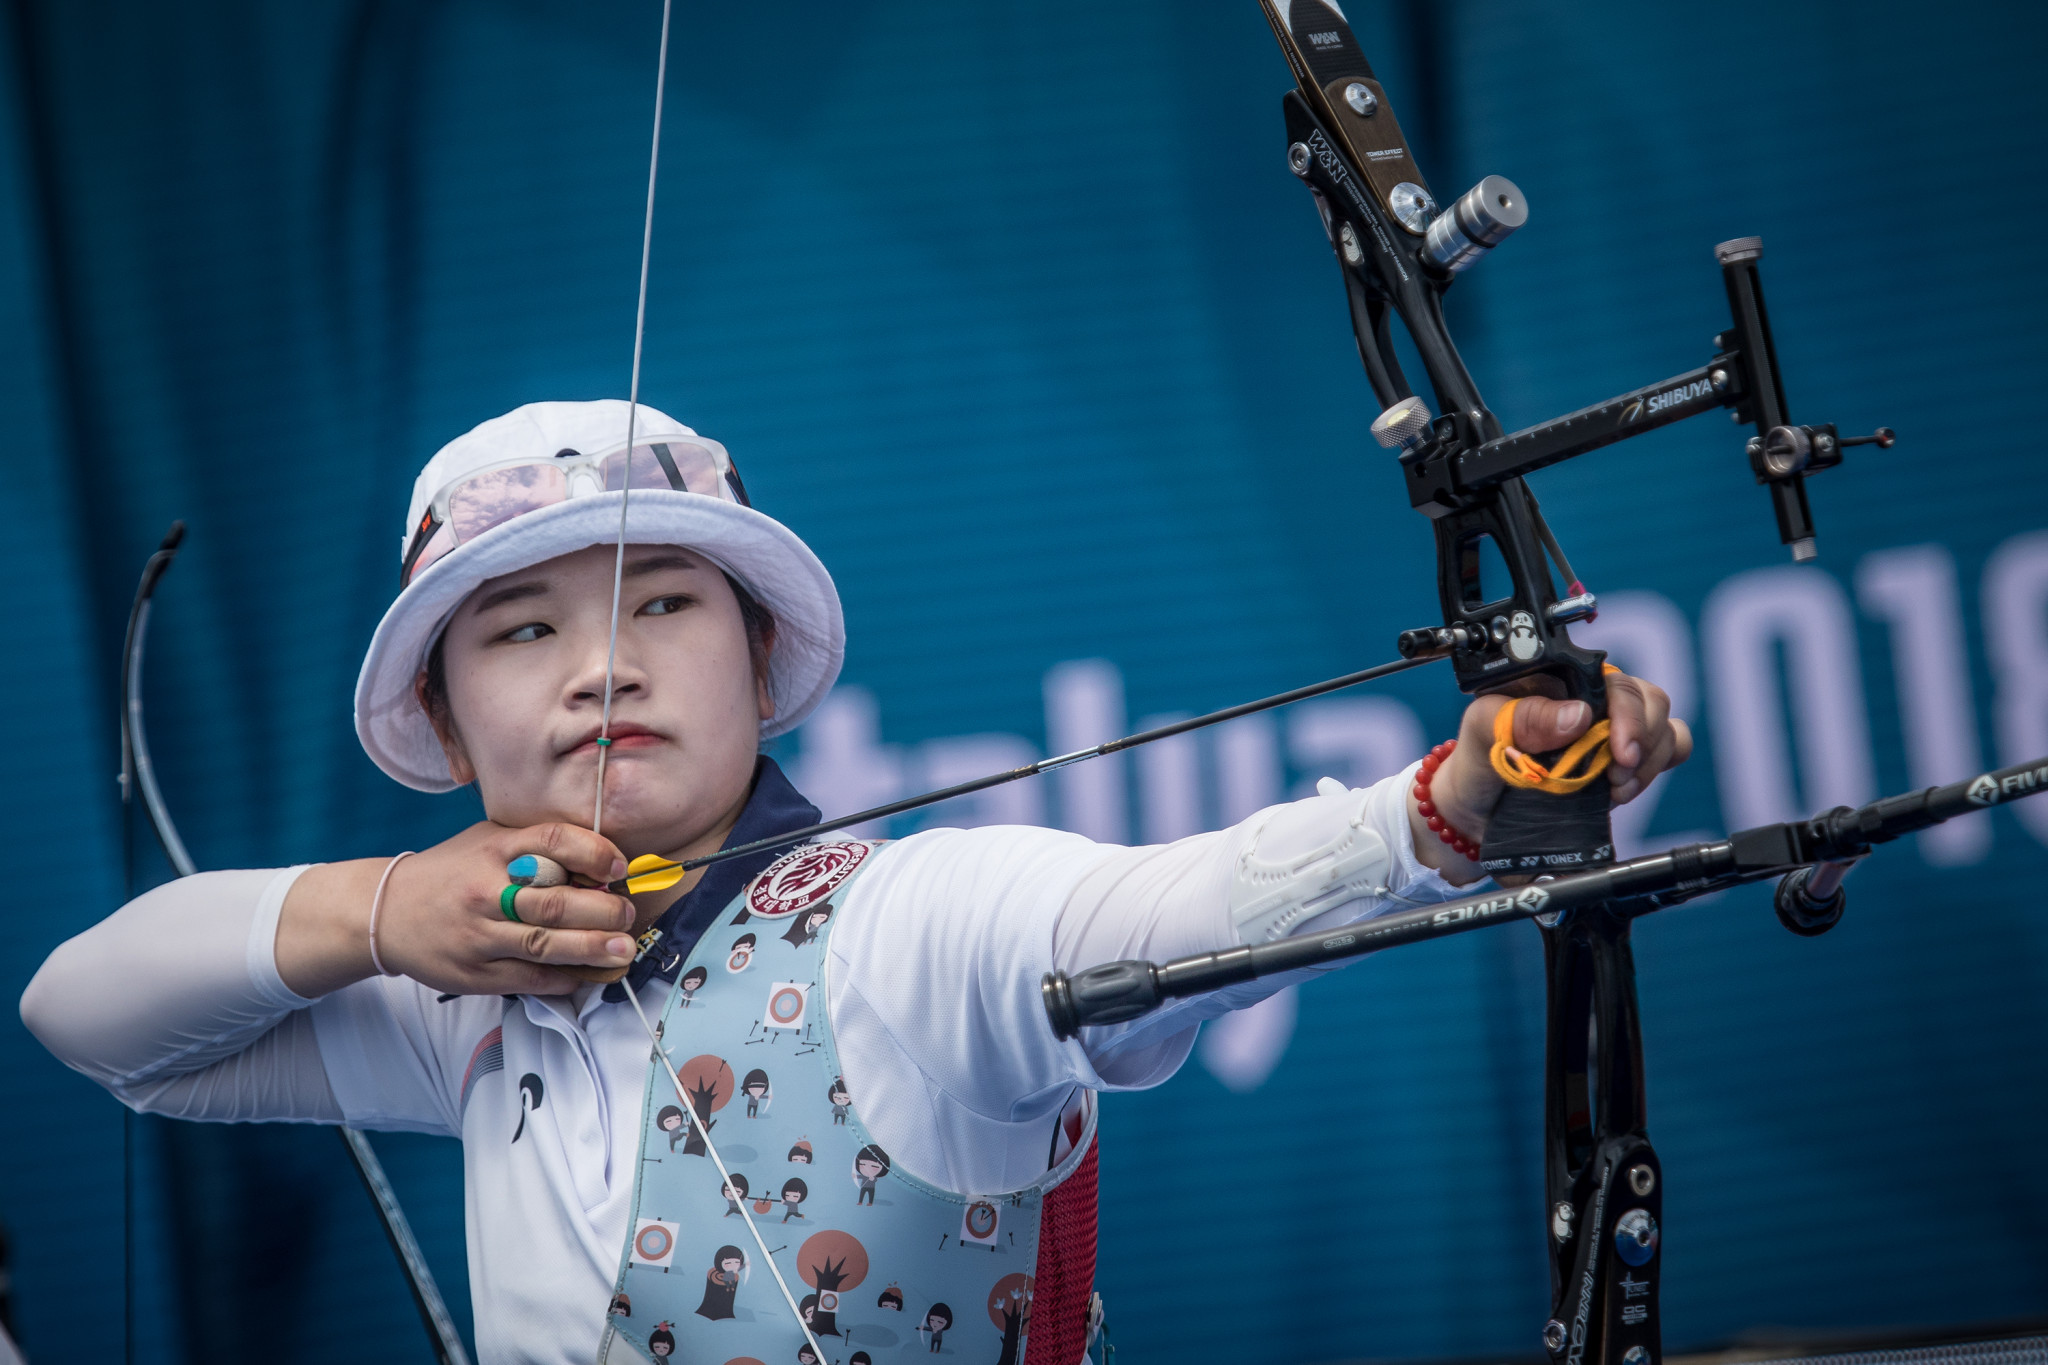 Kang Chae Young made it into the women's recurve final with ease at the Indoor Archery World Series event in Nimes ©Getty Images